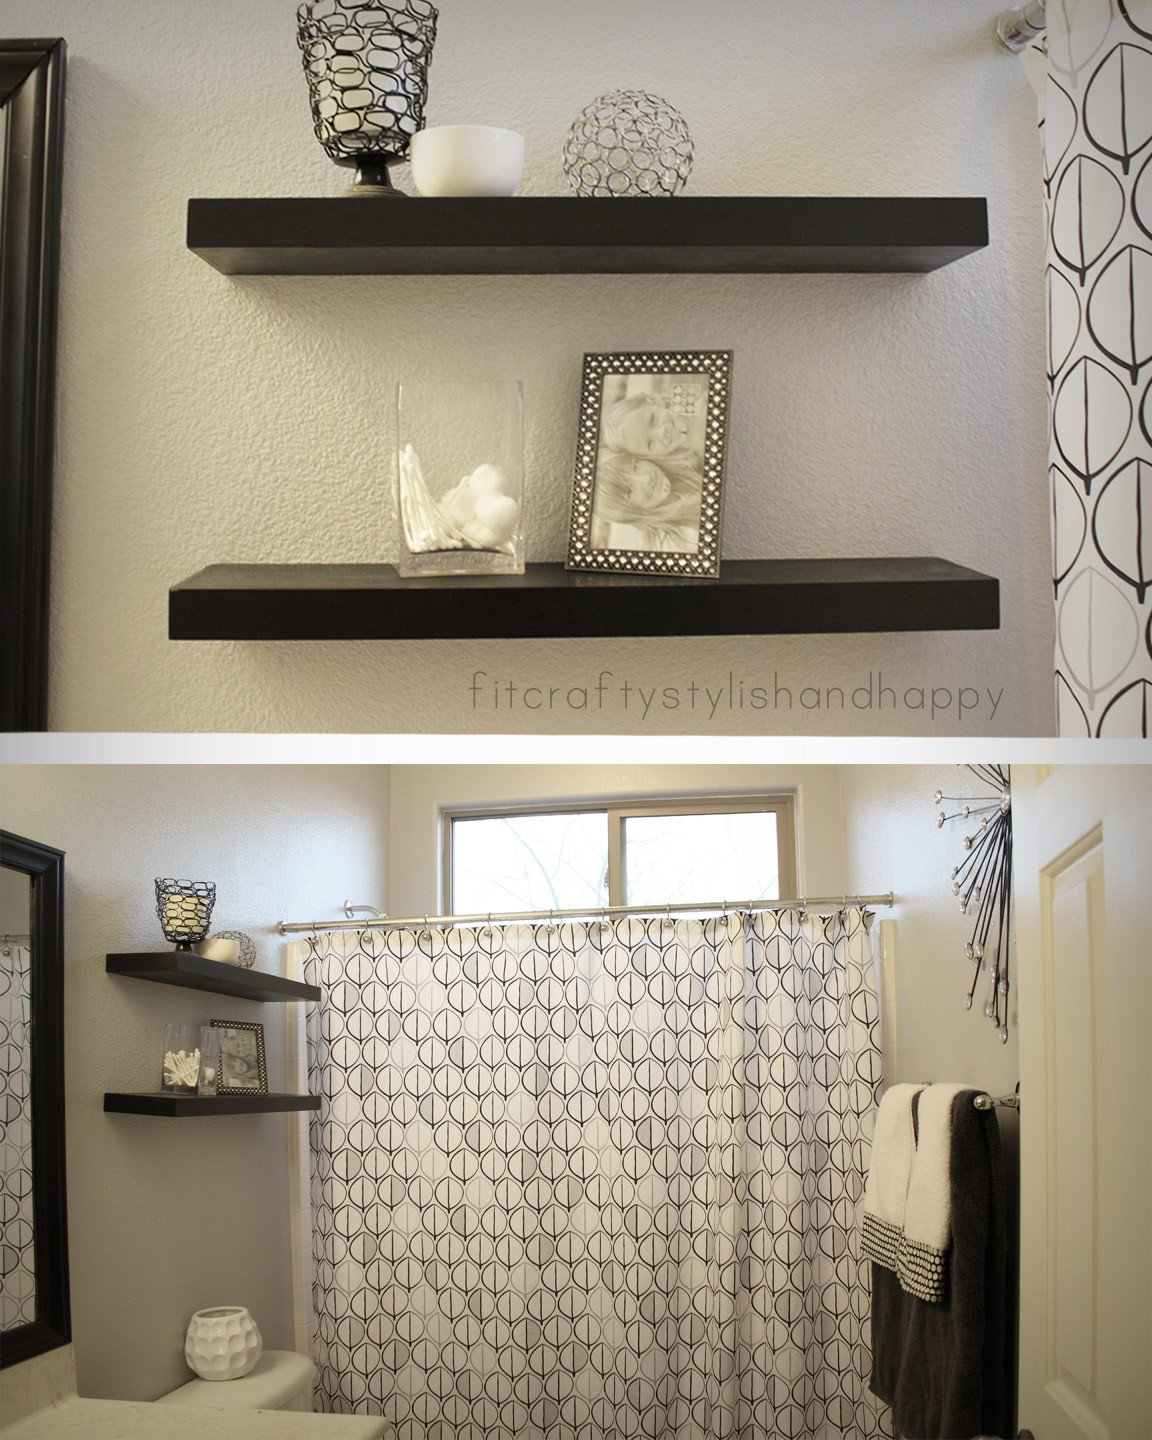 Black and Gray Bathroom Decor Elegant Grey Black and White Bathrooms 2017 Grasscloth Wallpaper